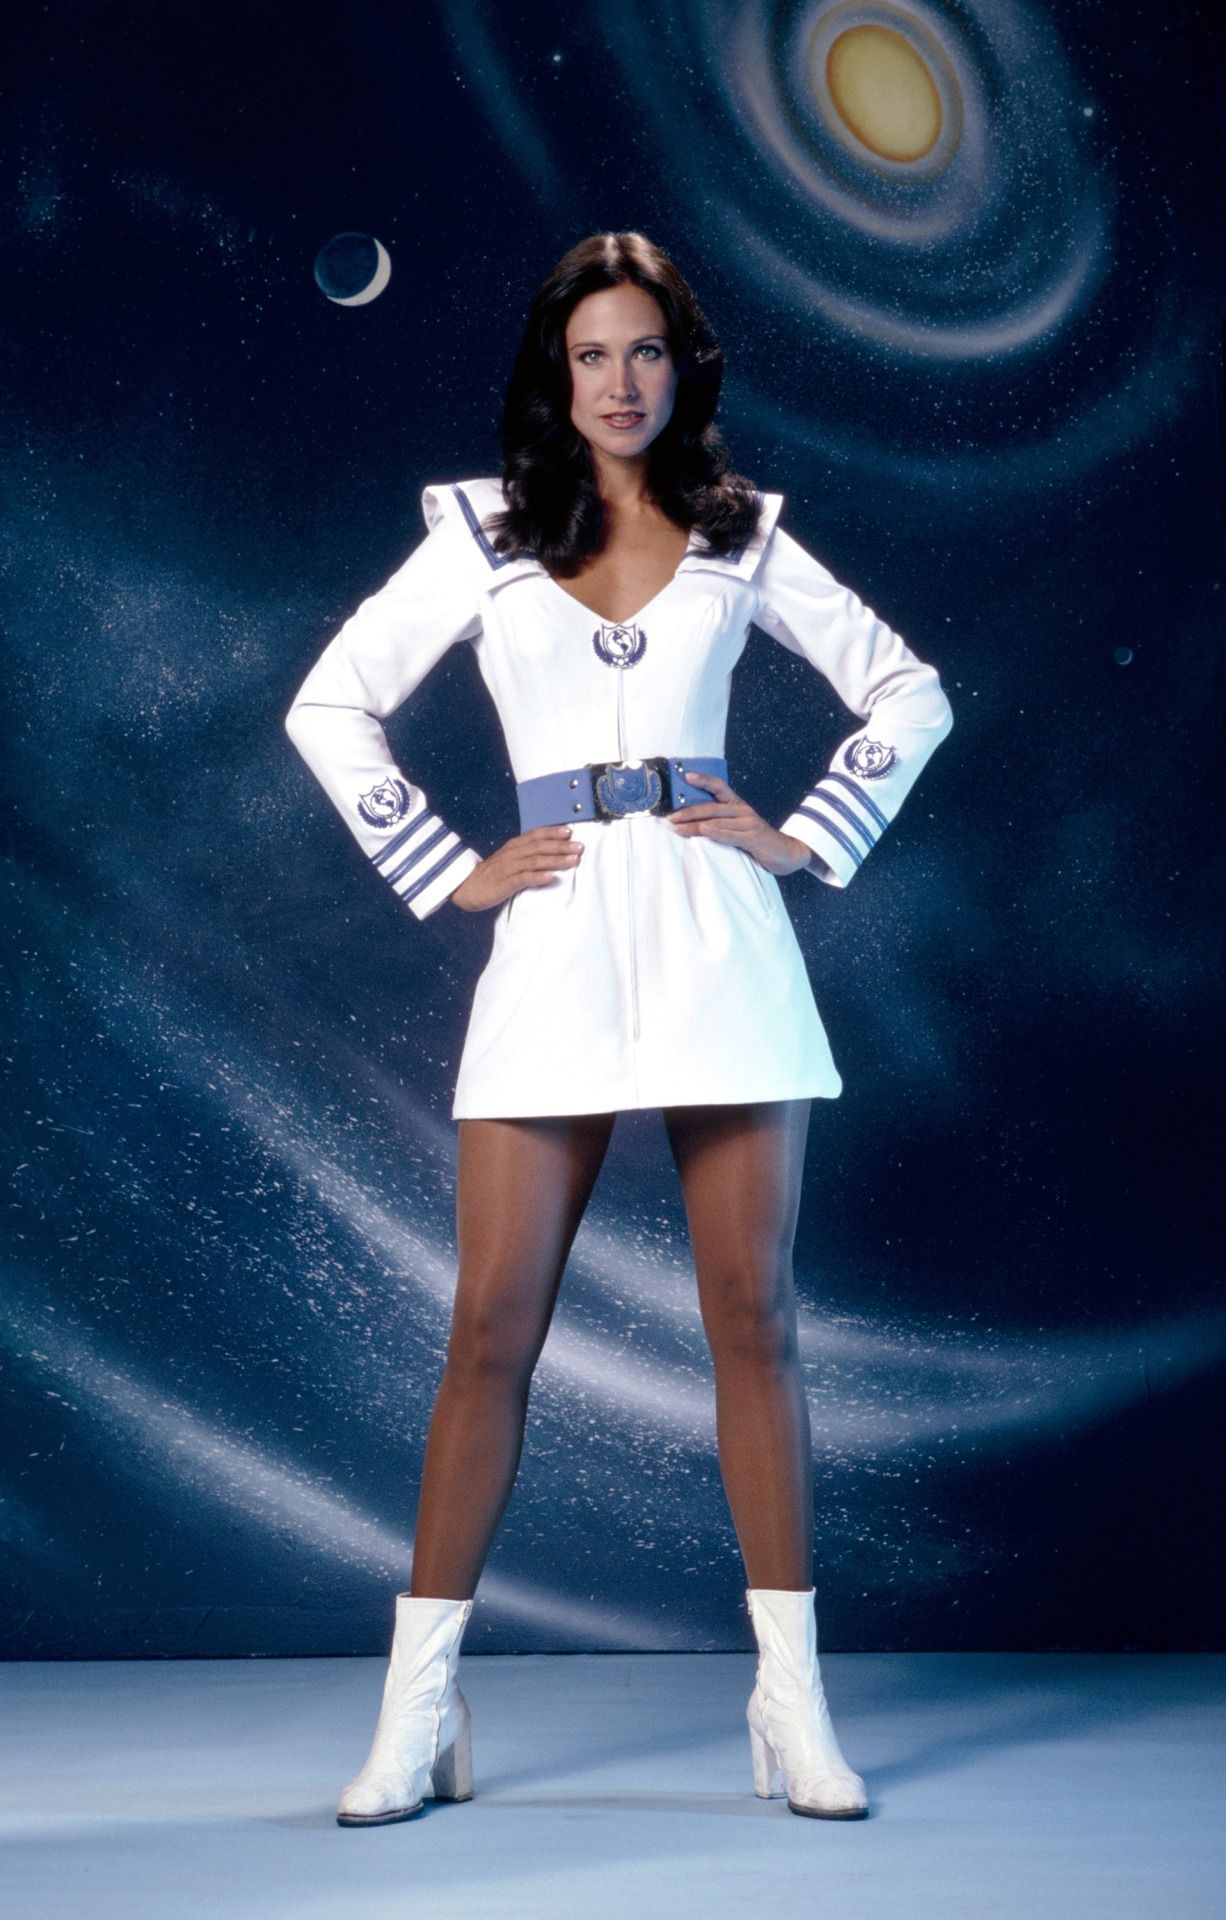 Erin gray in pantyhose